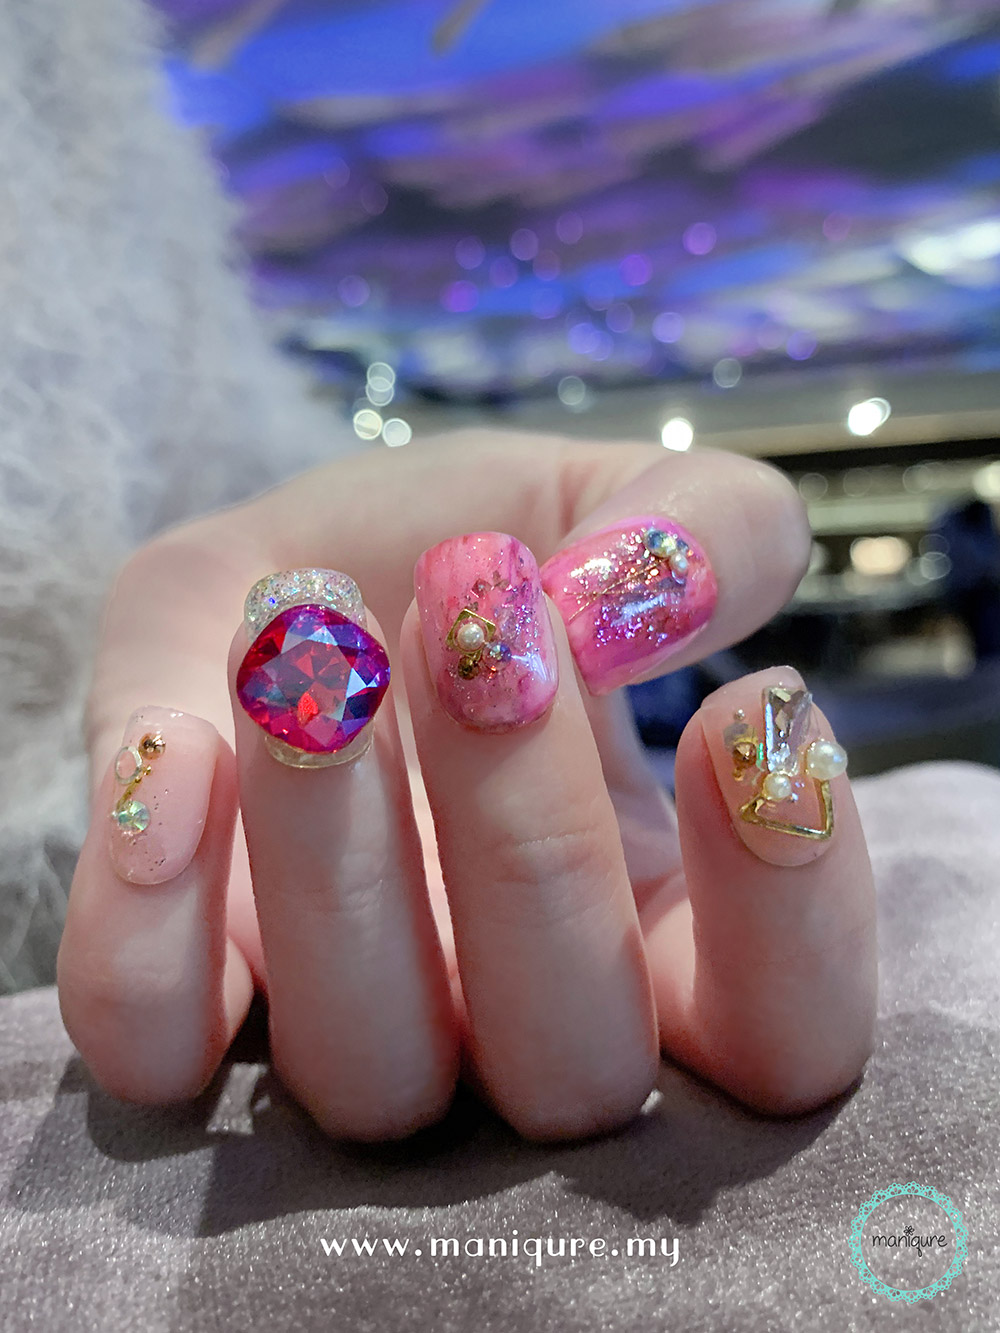 Astrology Marble Nails – Galaxy Manicure